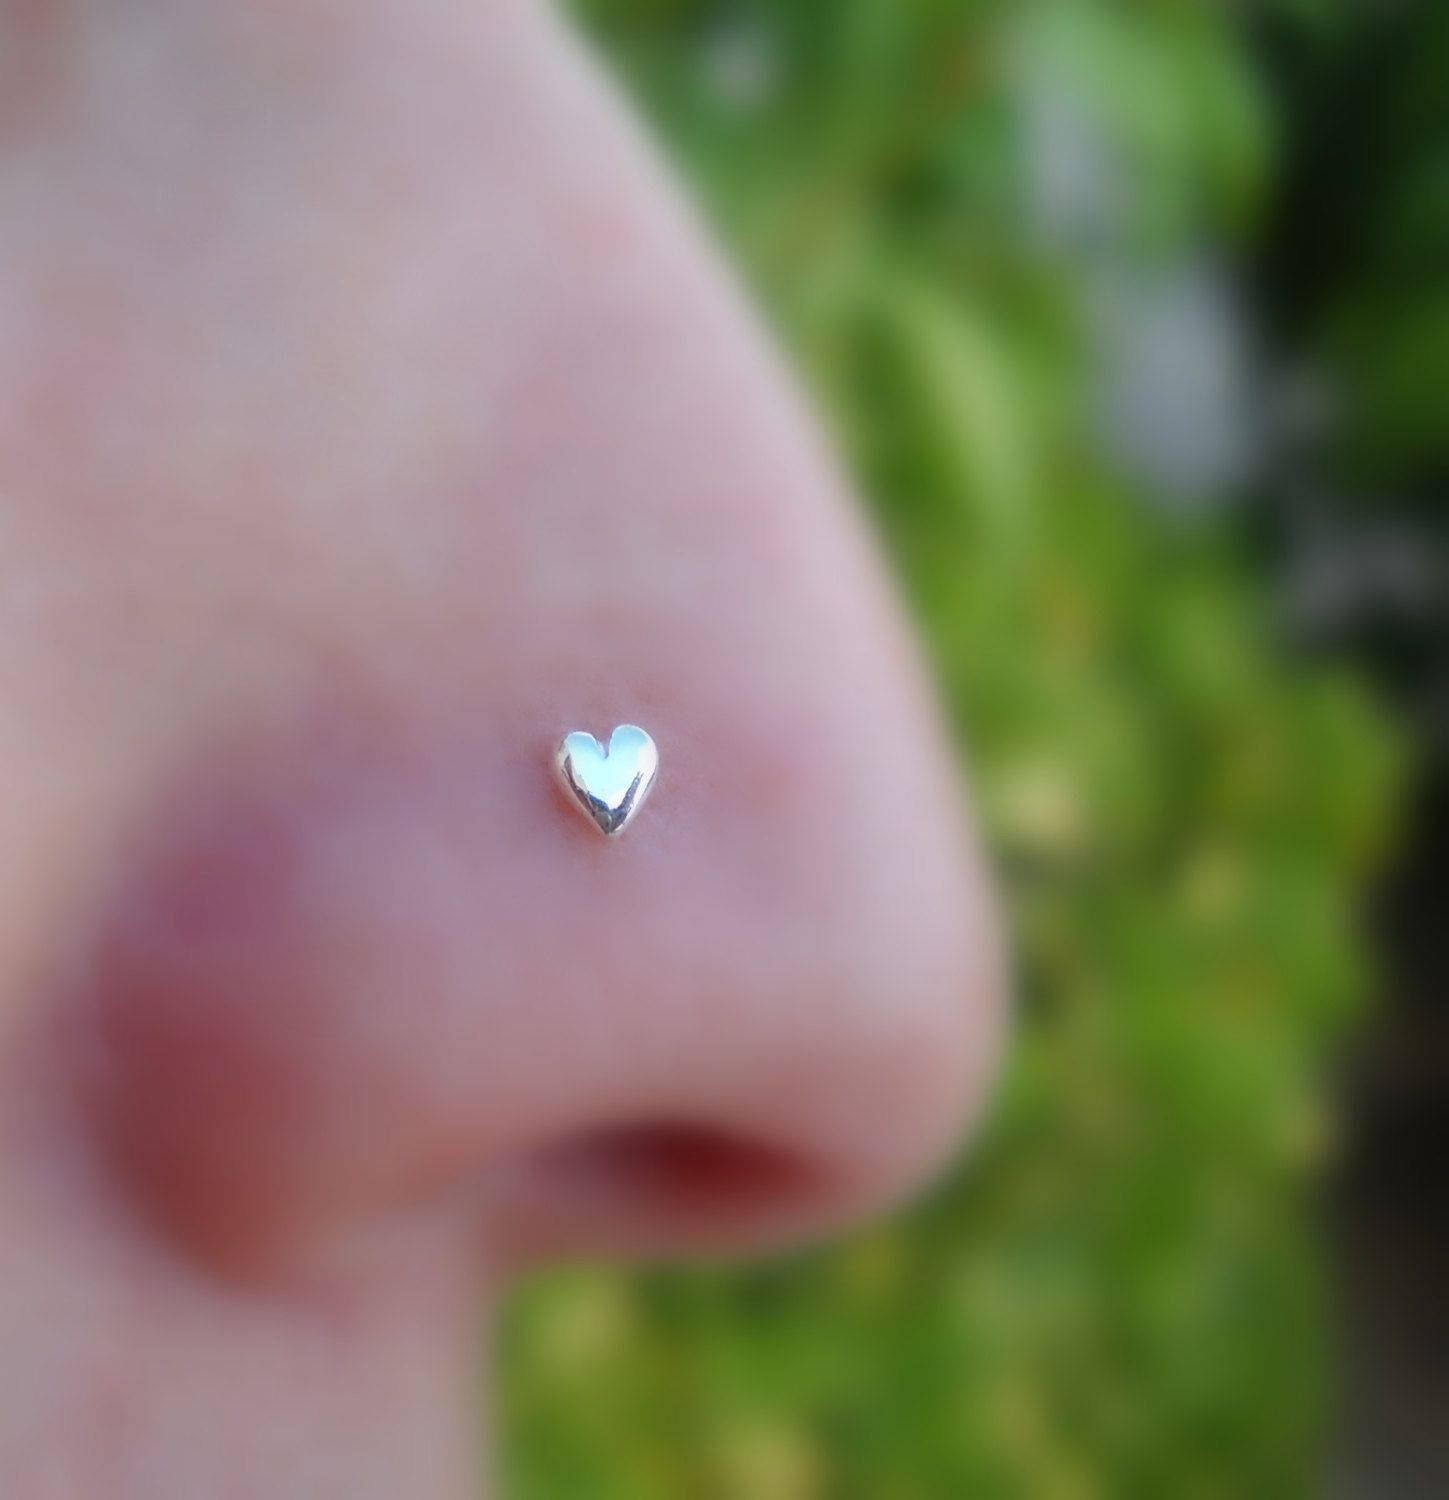 Valentine Heart Nose Ring Stud Sterling Silver Handcrafted $10 95